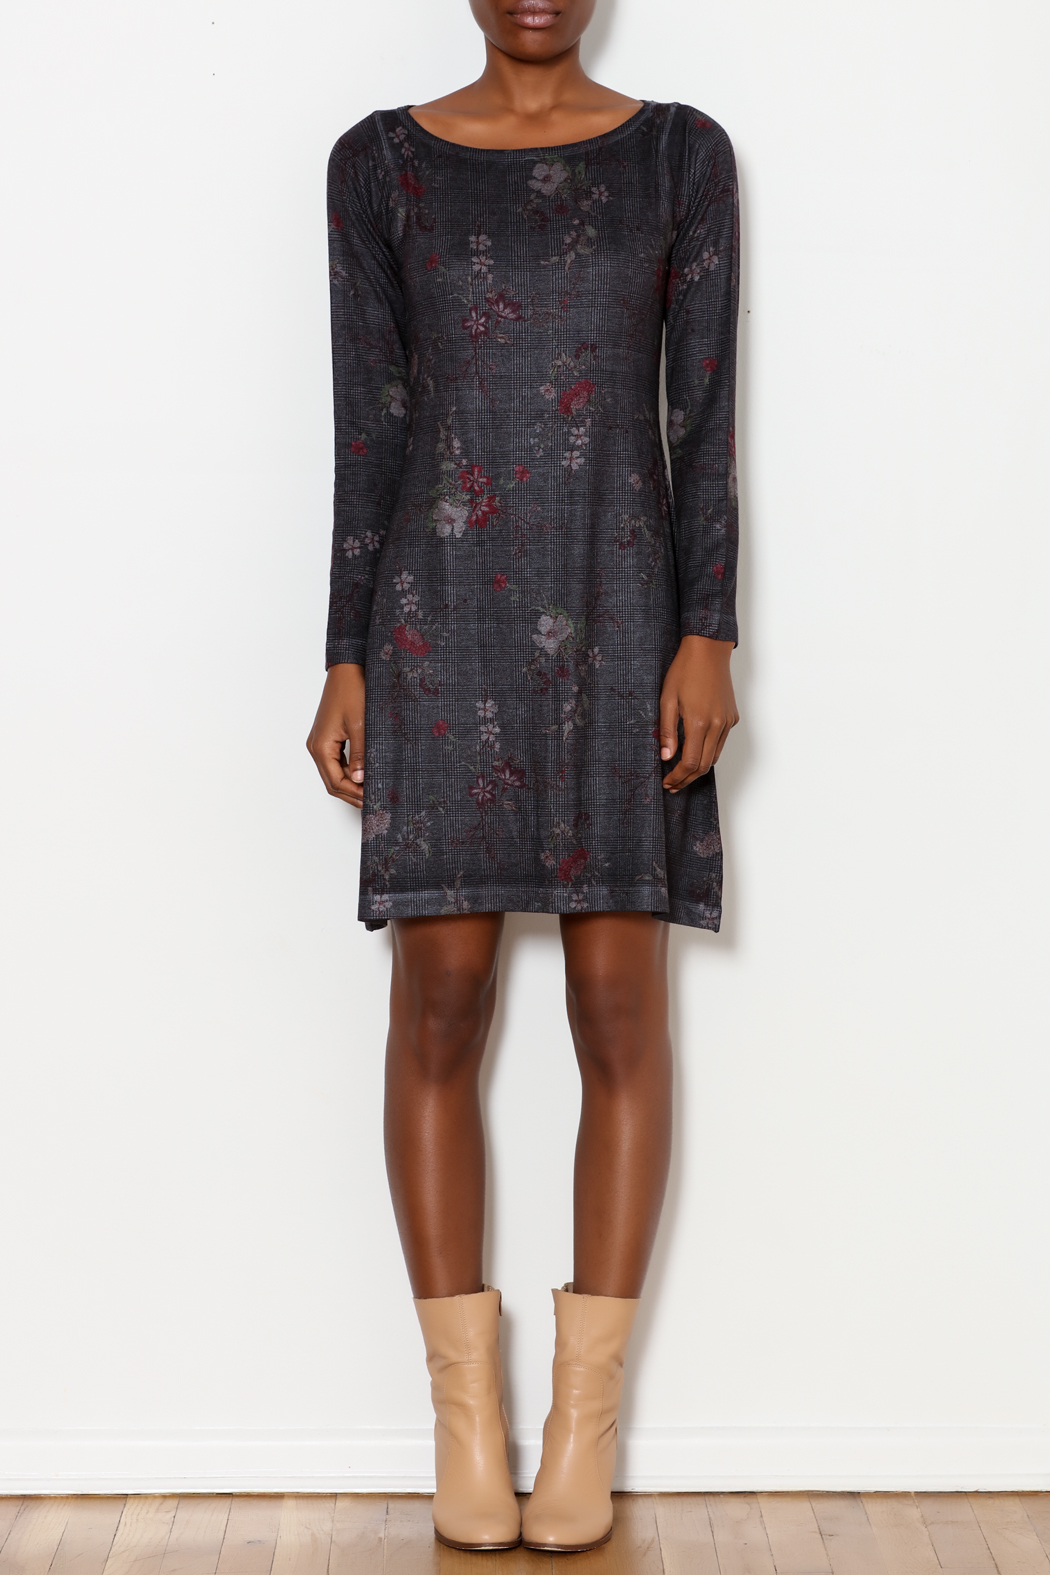 Nally & Millie Houndstooth Floral Print Dress - Front Full Image